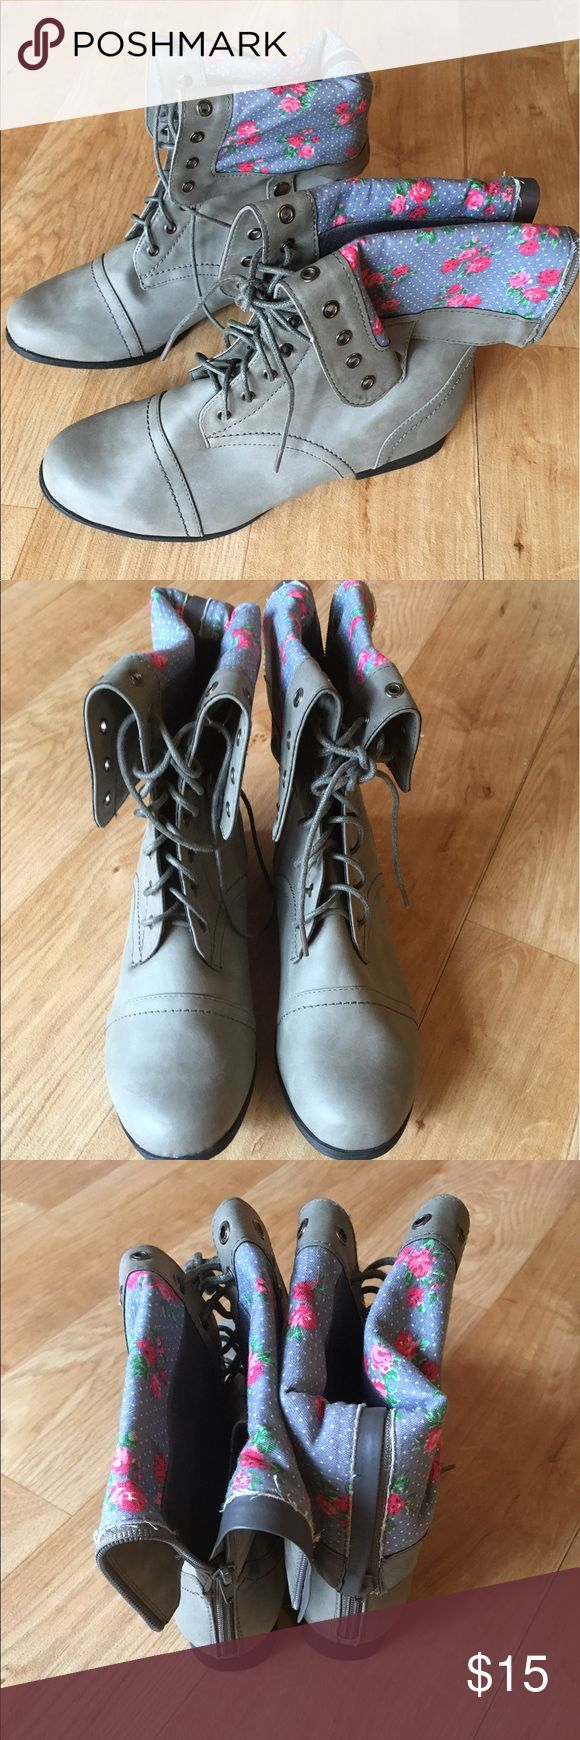 Size 8w gray/ floral combat boots. Wet Seal Size 8w gray/ floral combat boots. Wet Seal. NEW/ Never worn. Excellent condition. Can be folded over and buttoned at the sides to show the floral interior or laced up. Wet Seal Shoes Lace Up Boots